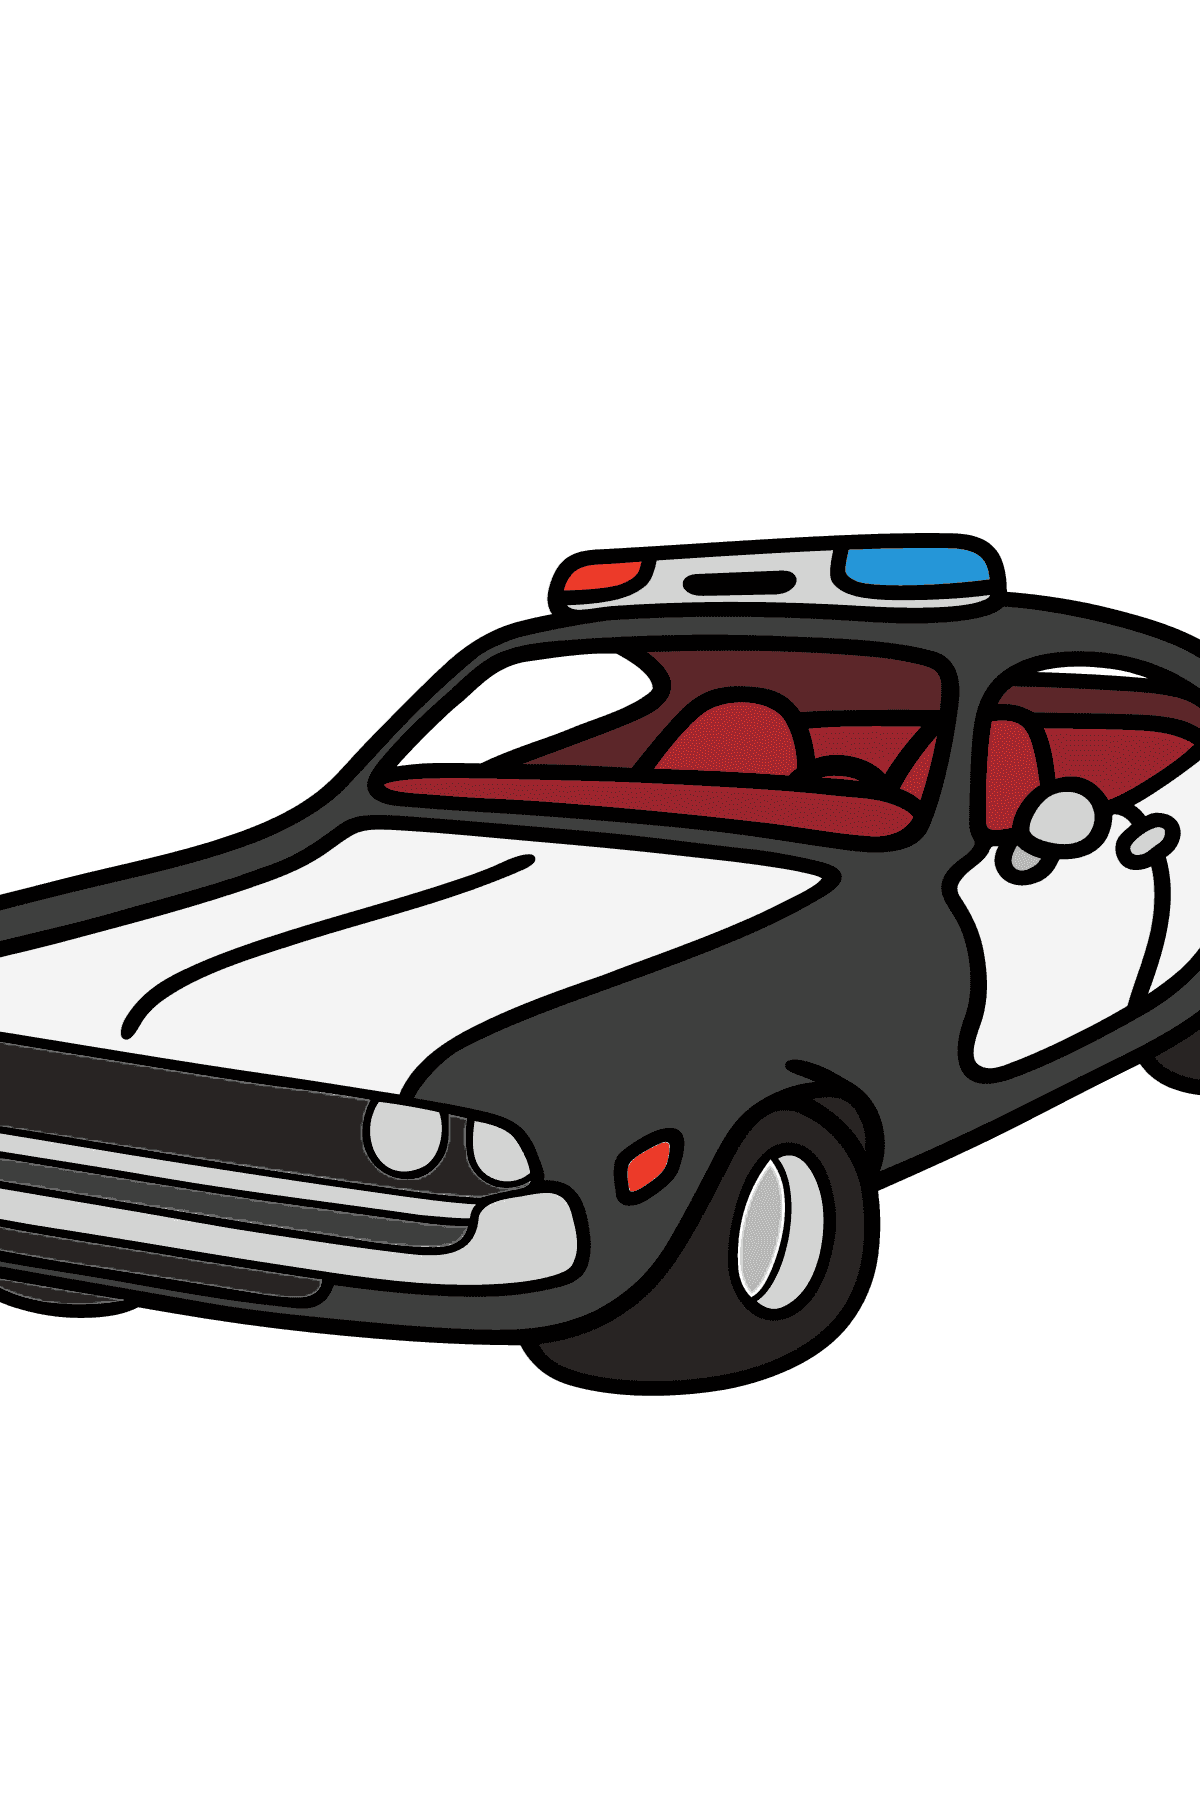 Coloring Page - A Dark Gray Police Car for Children